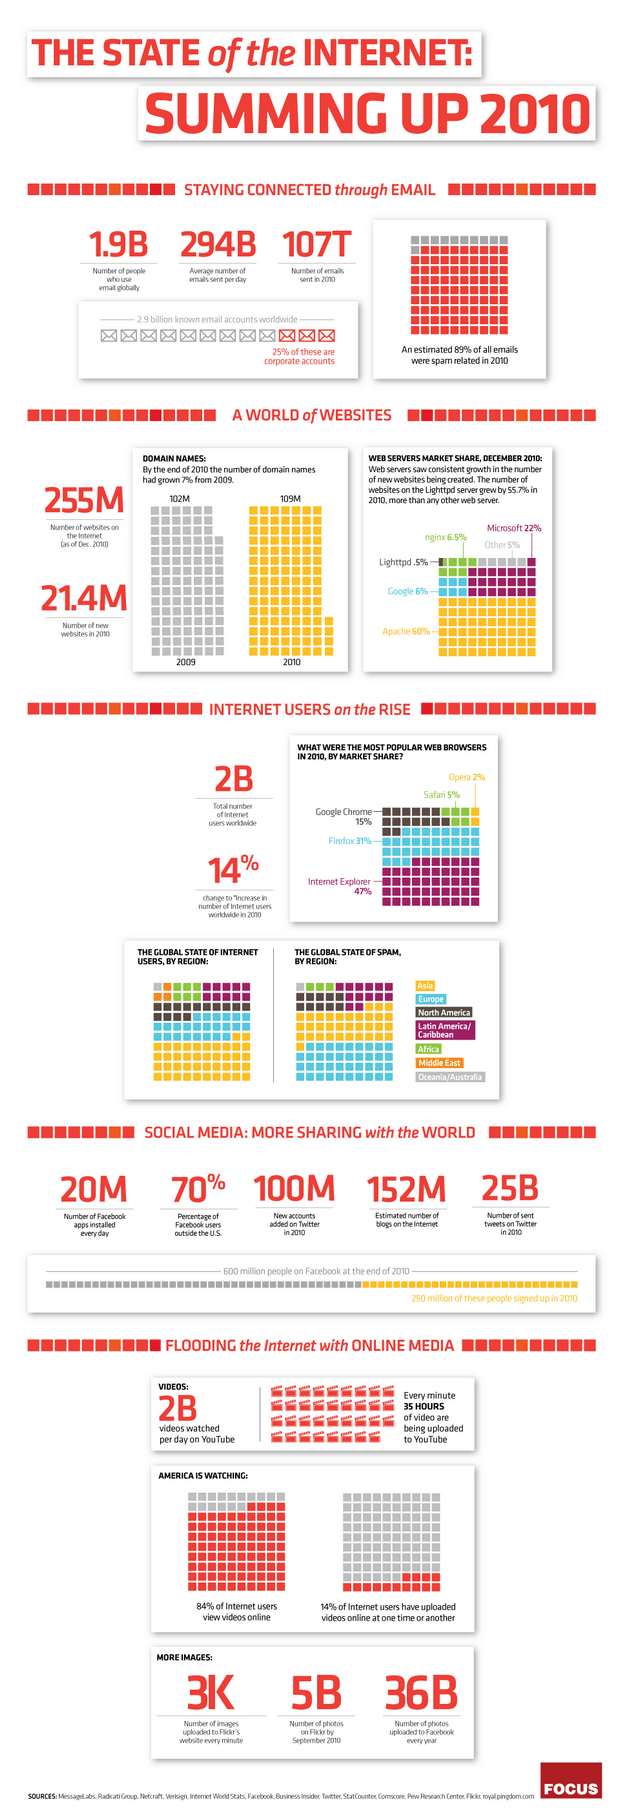 State of the Internet 2010 infographic